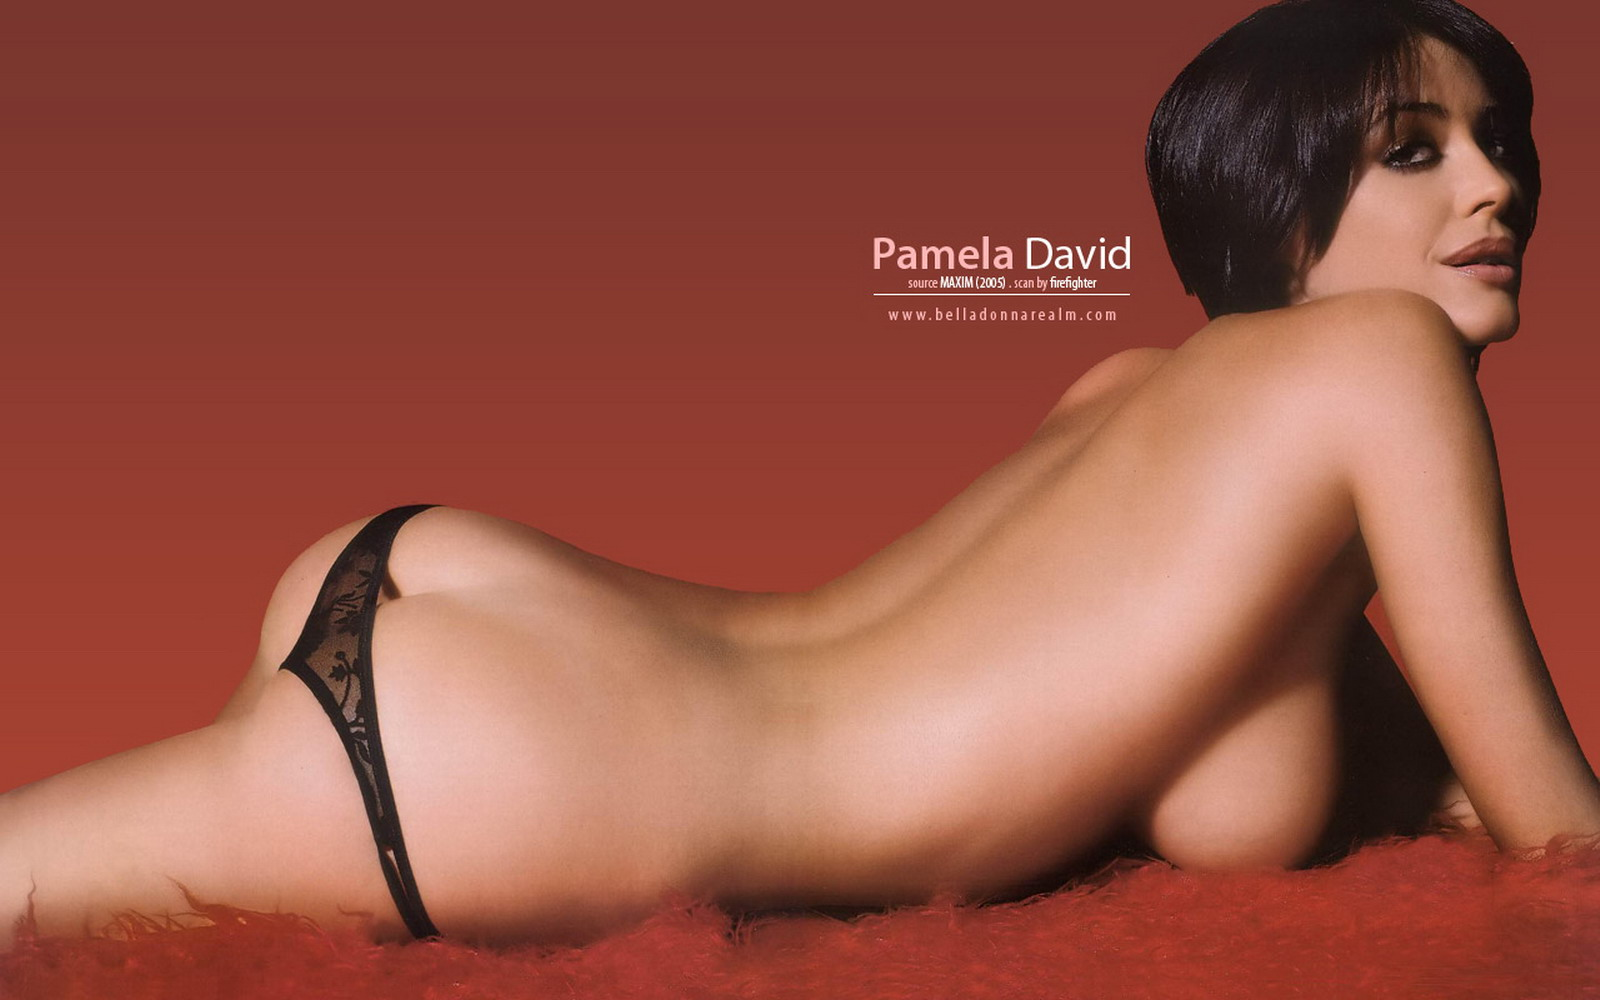 Pamela david naked ass pictures